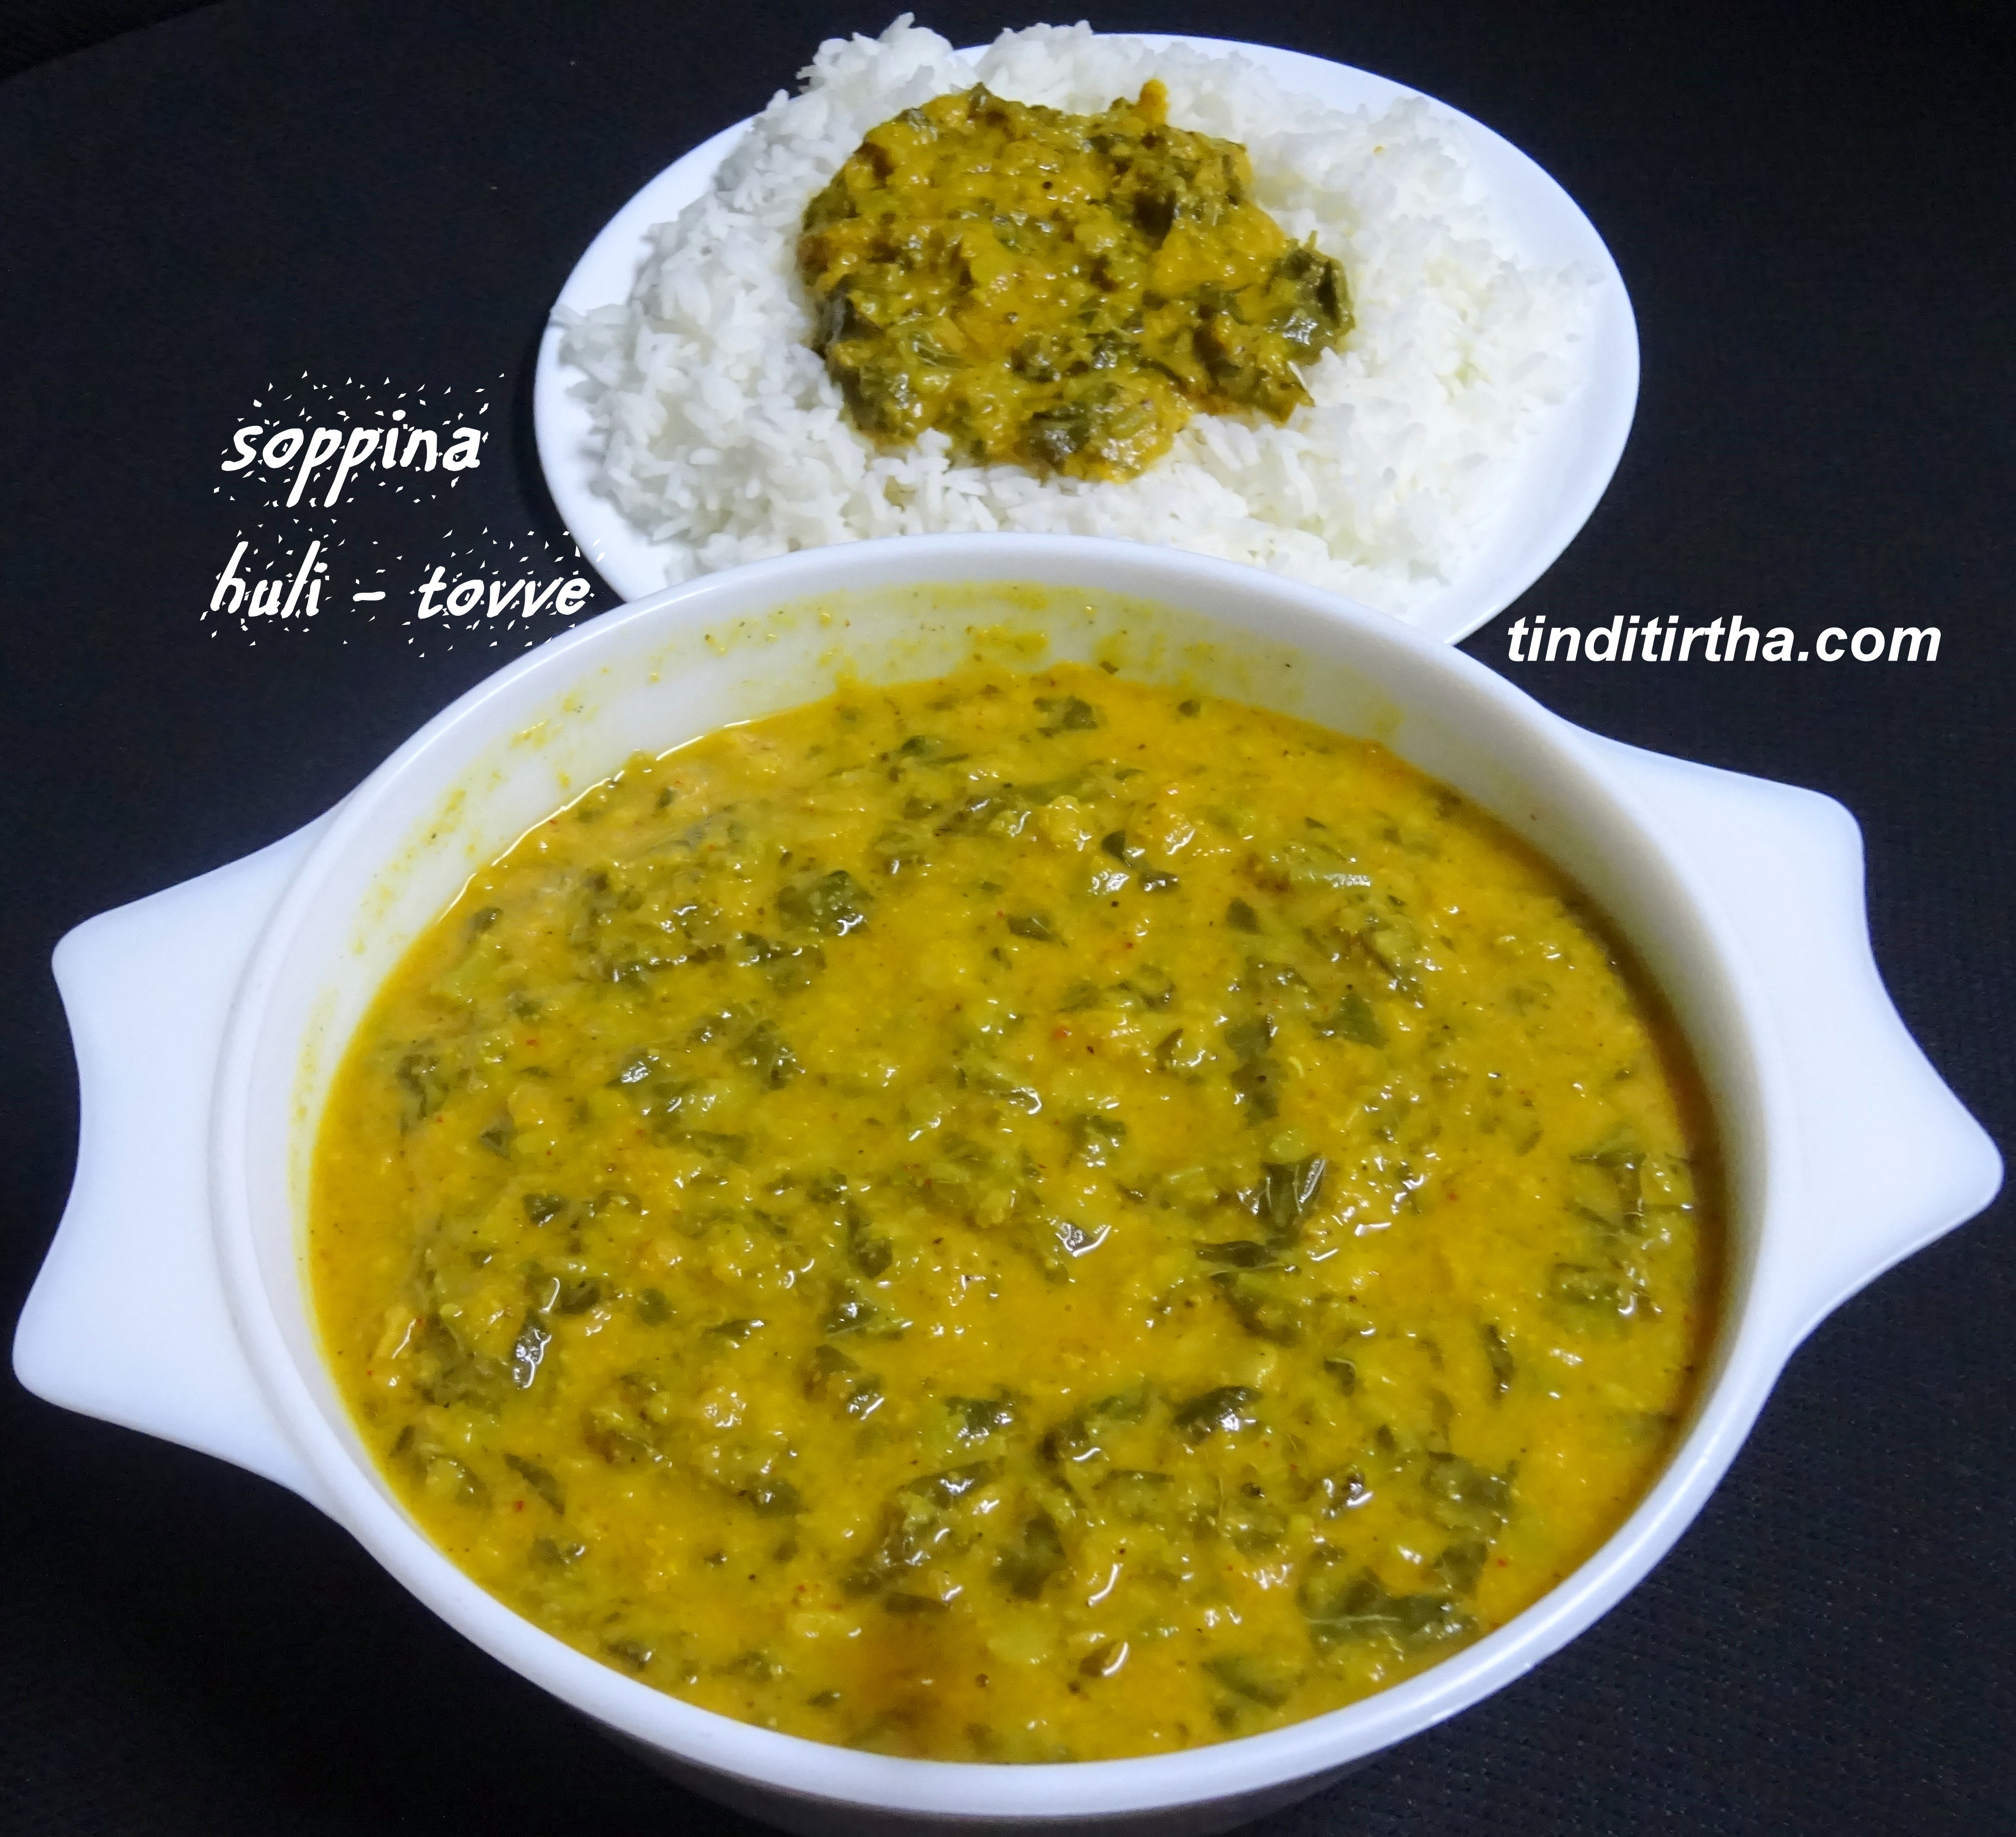 SOPPINA HULI TOVVE….an opos recipe as well